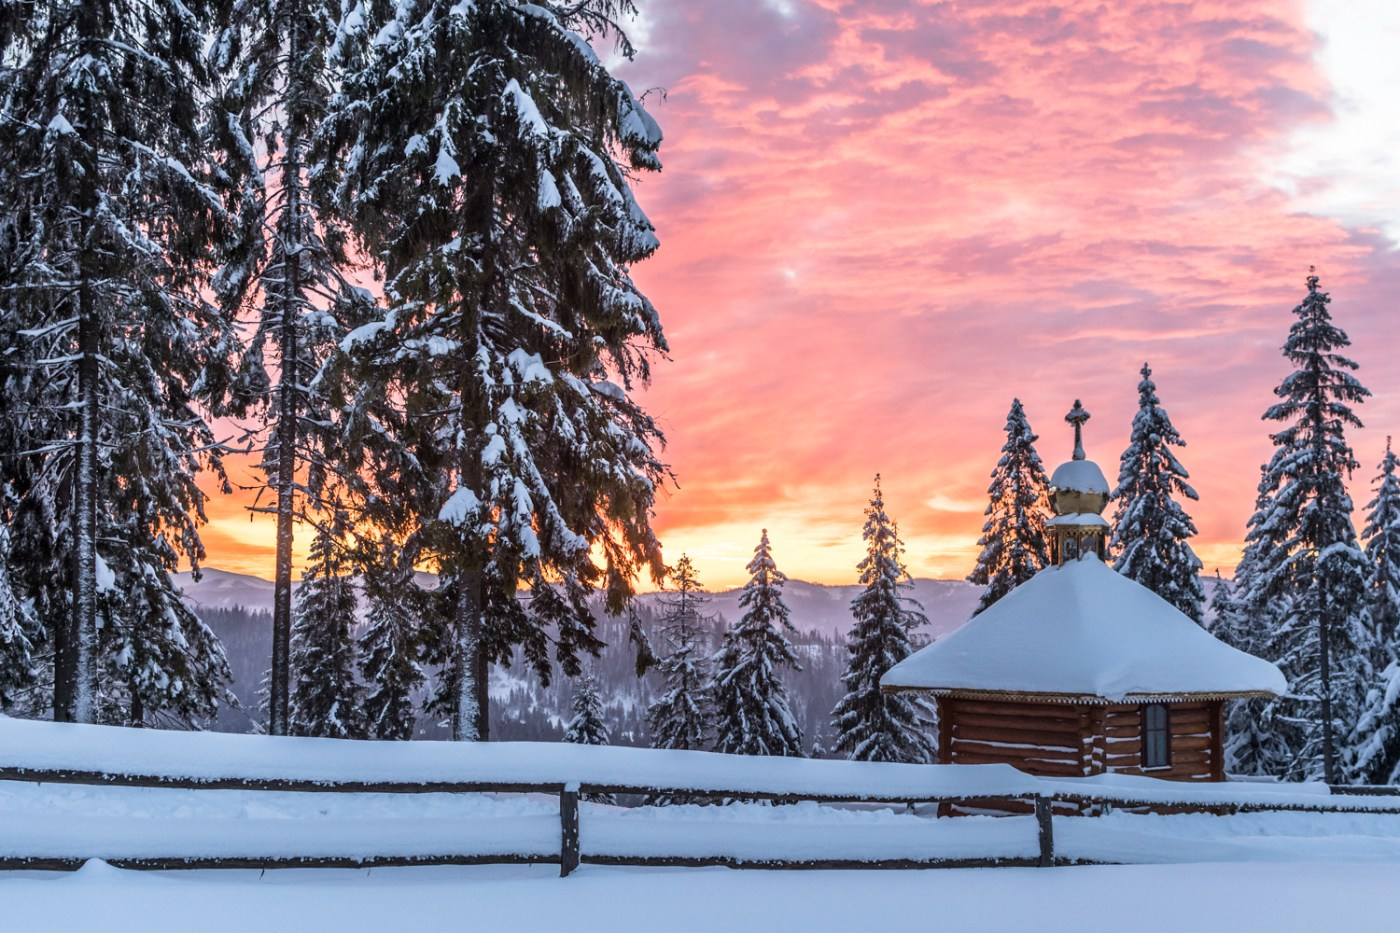 Ukraine, Carpathian mountains, Winter, Eastern Europe